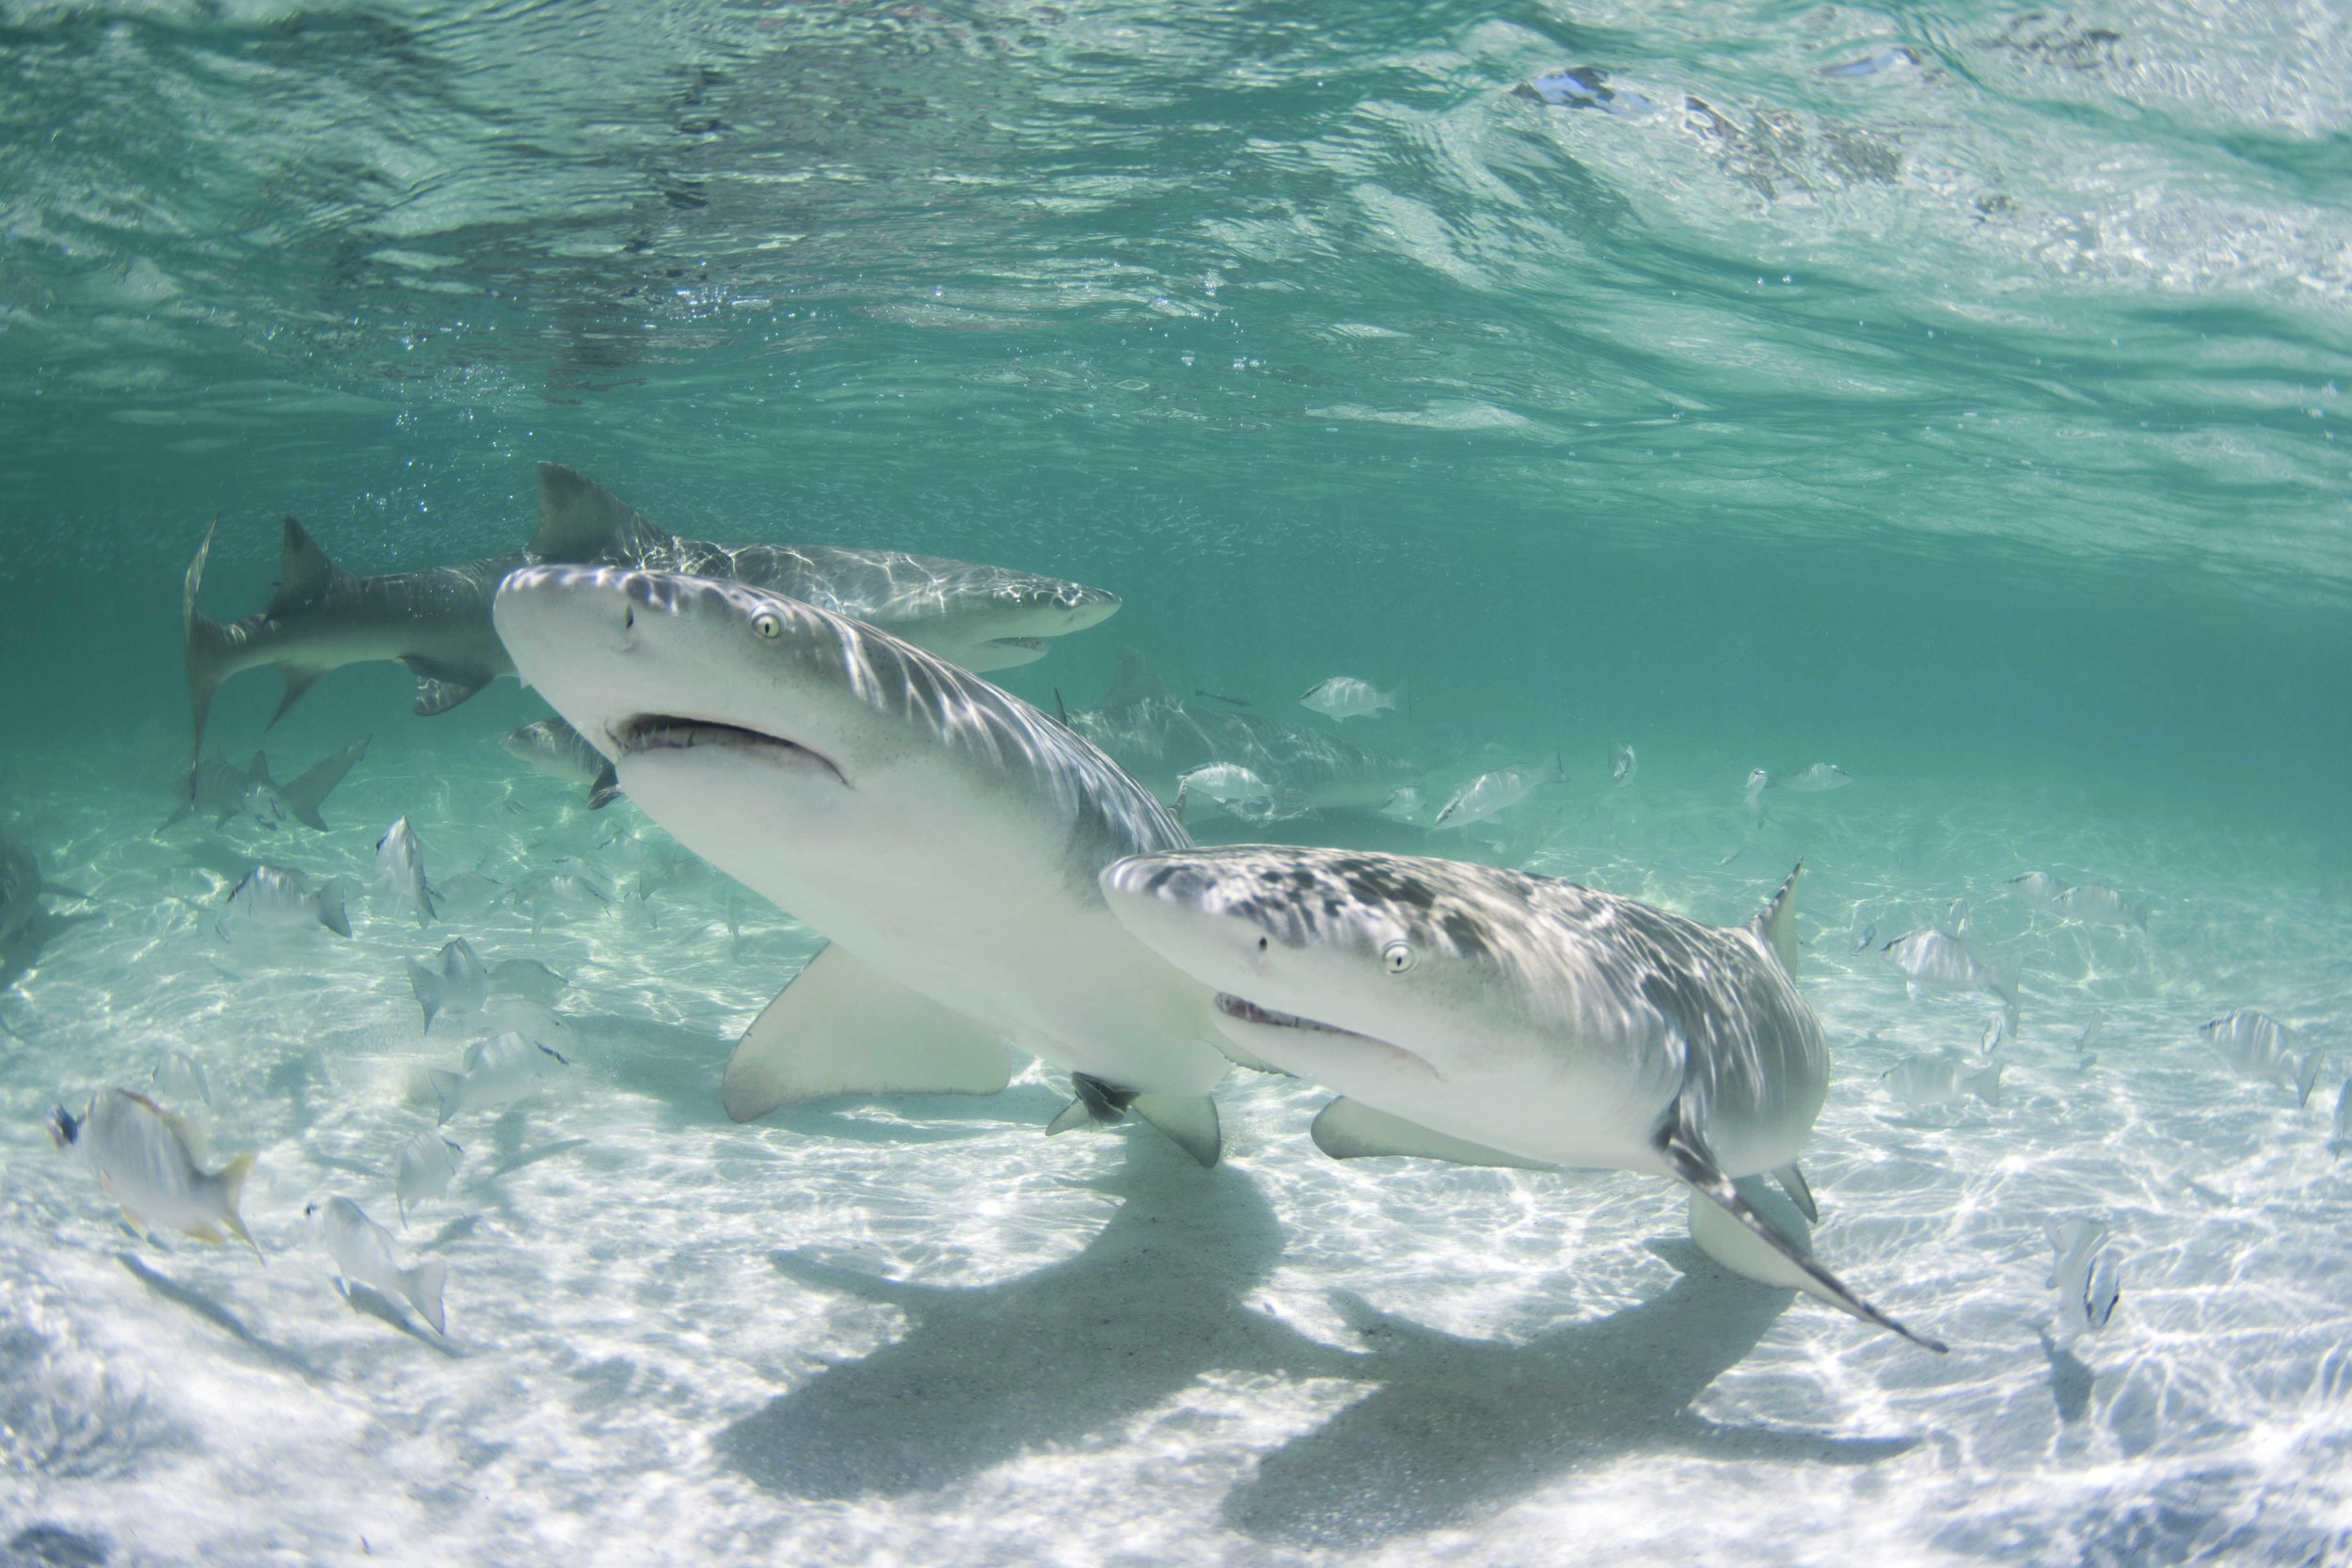 Lemon sharks ranging from 60cm to 200cm were all present in just 2-3ft of water.